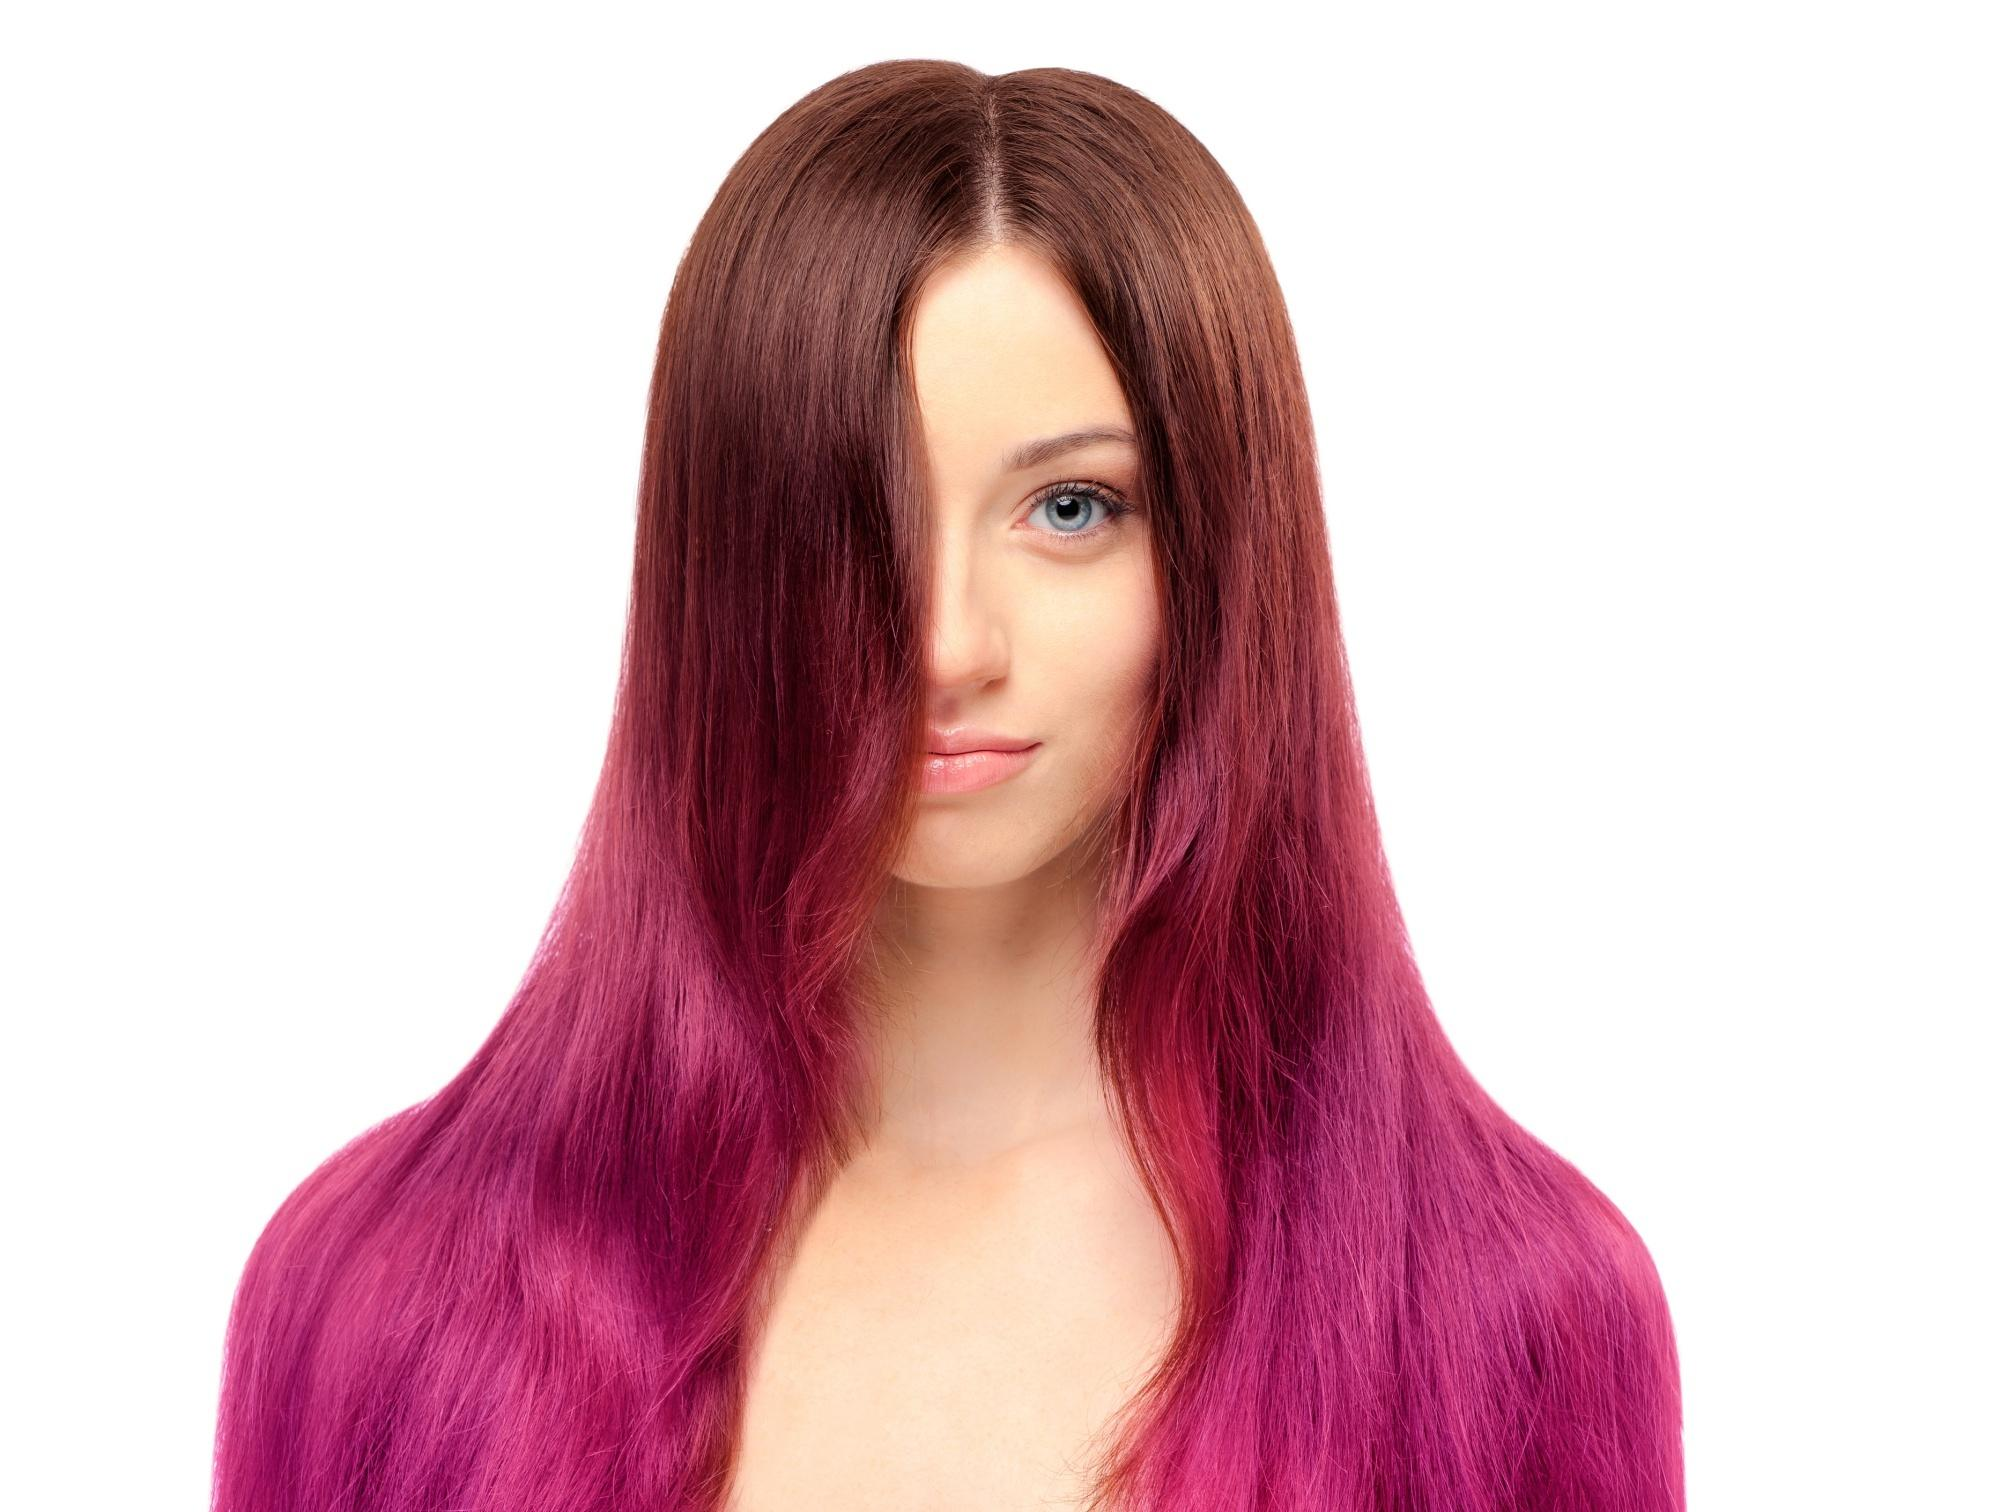 Pink ombre hair: Woman with long brown and pink ombre hair